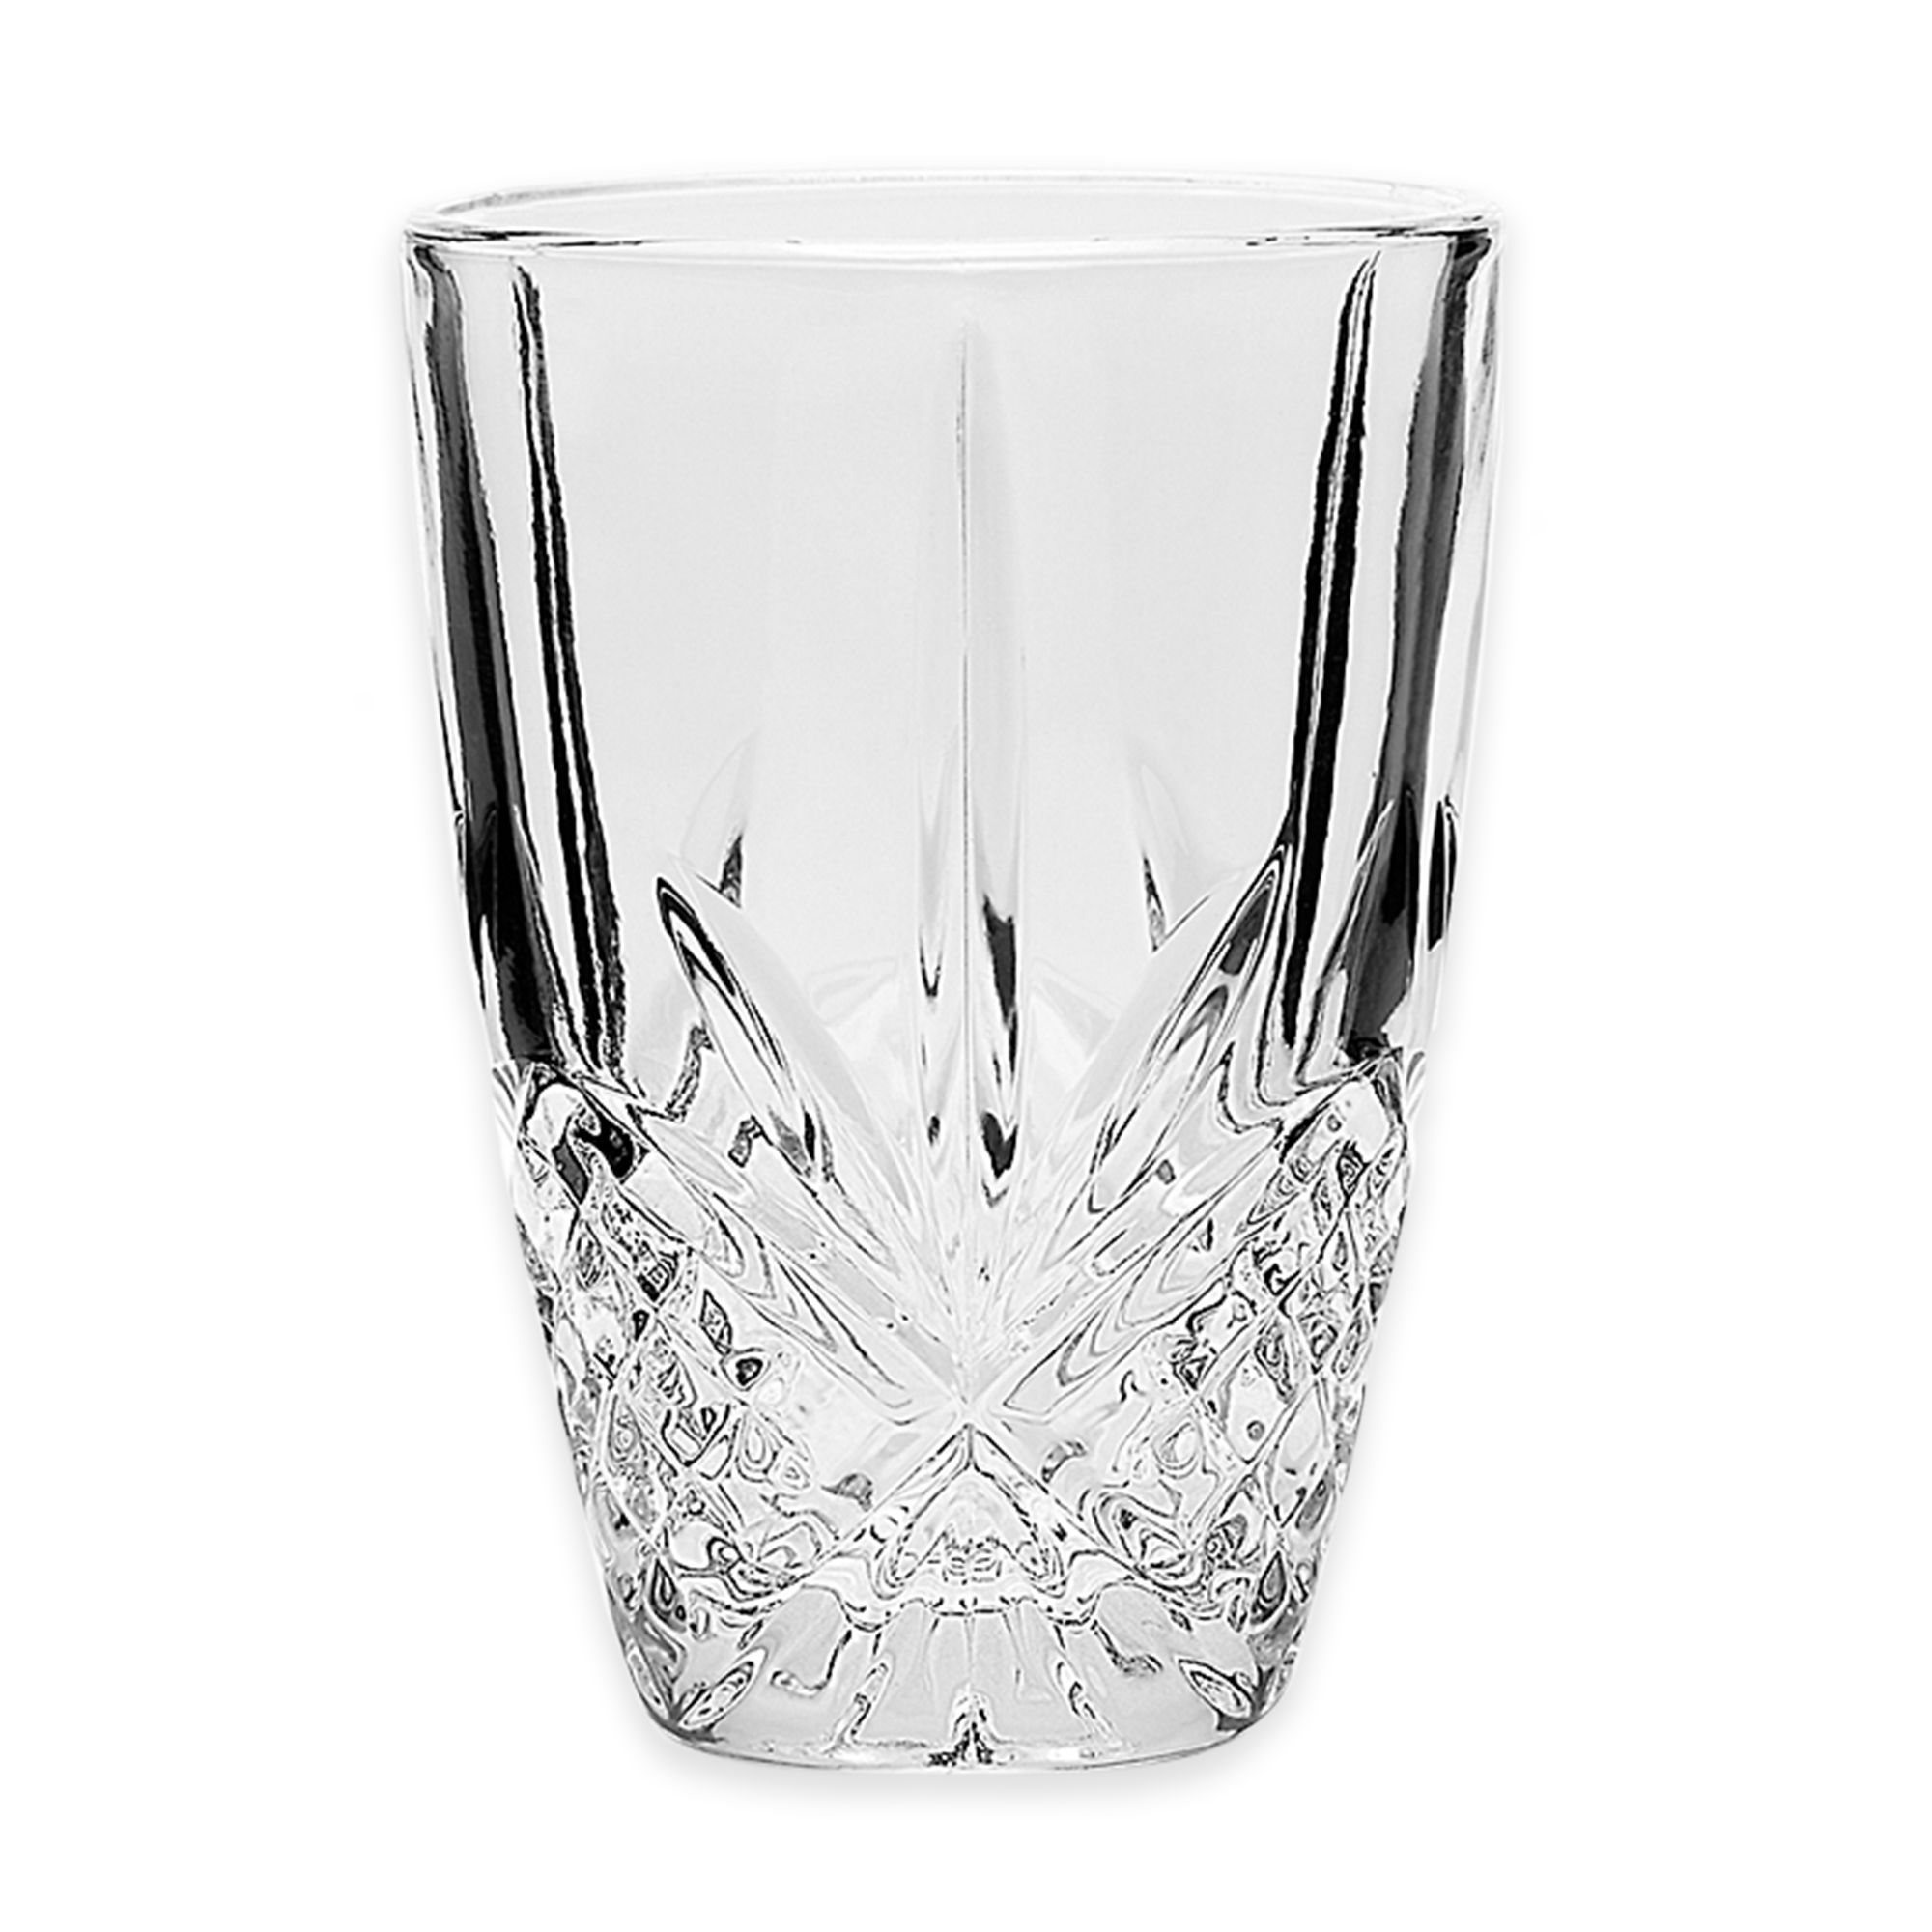 Glass Sets Juice Glasses Juice Glasses Set of 4